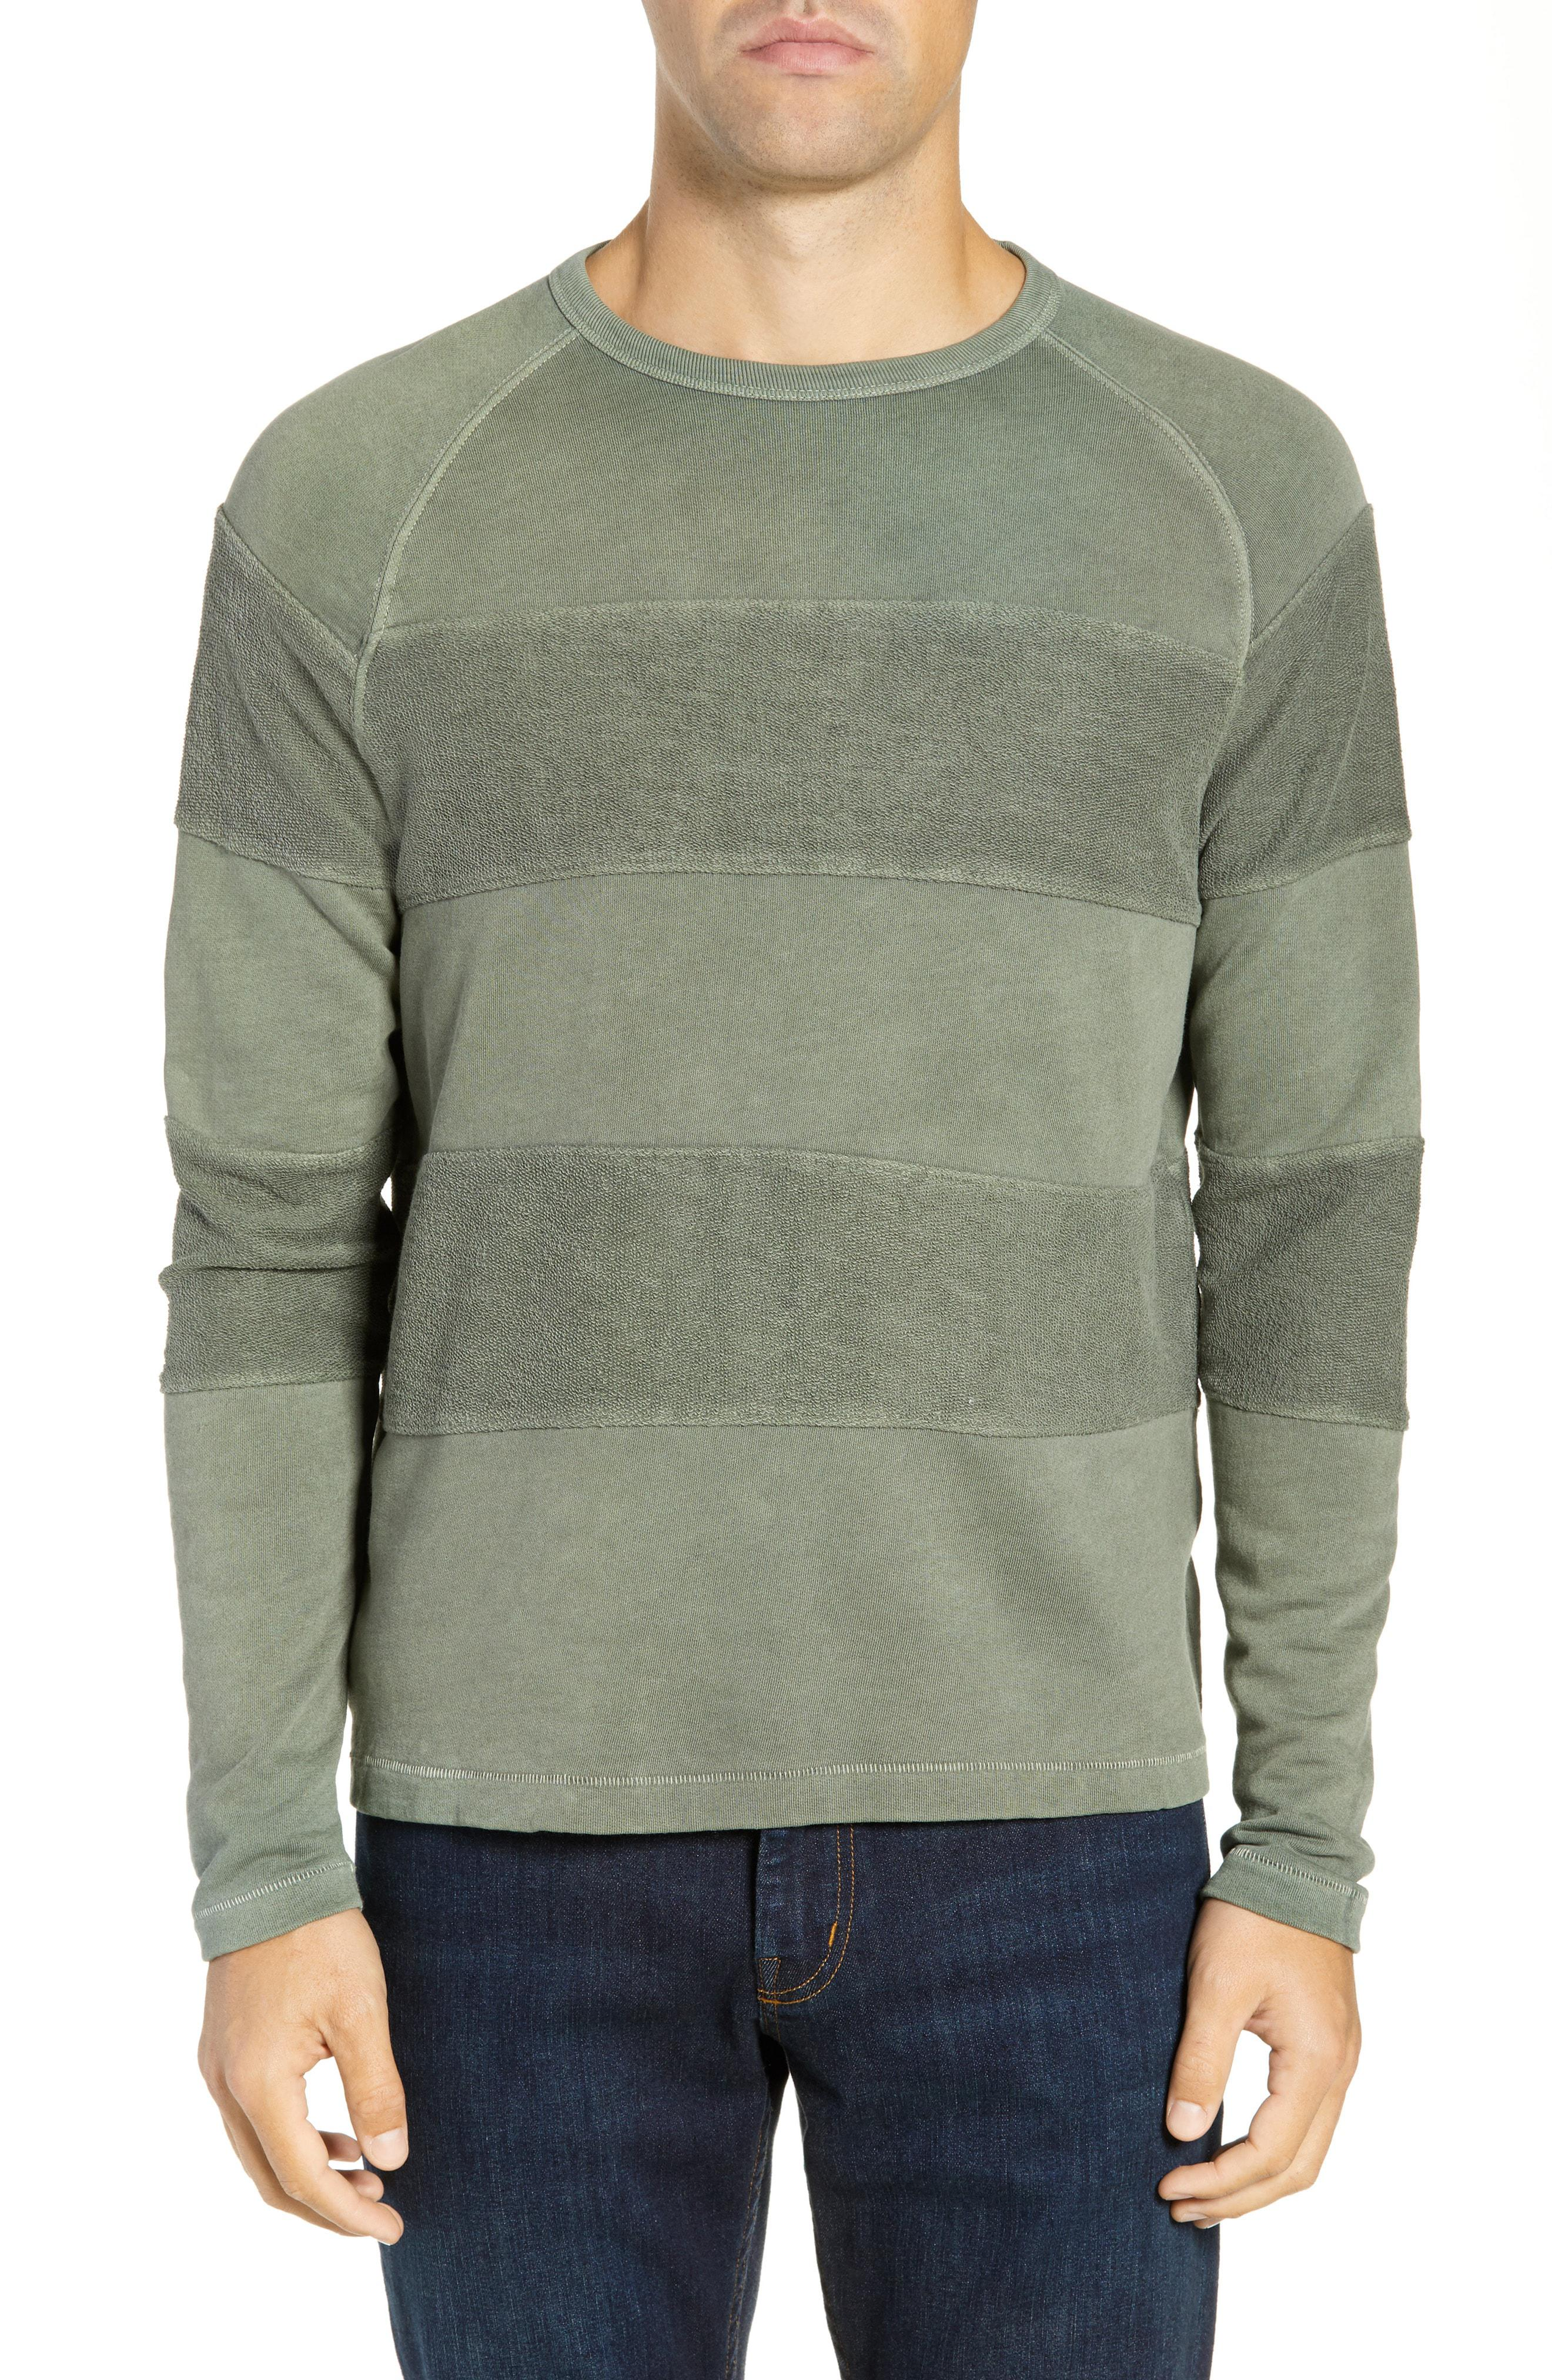 b347887a4d4 Lyst - French Connection Tonal Stripe Regular Fit Sweatshirt in ...